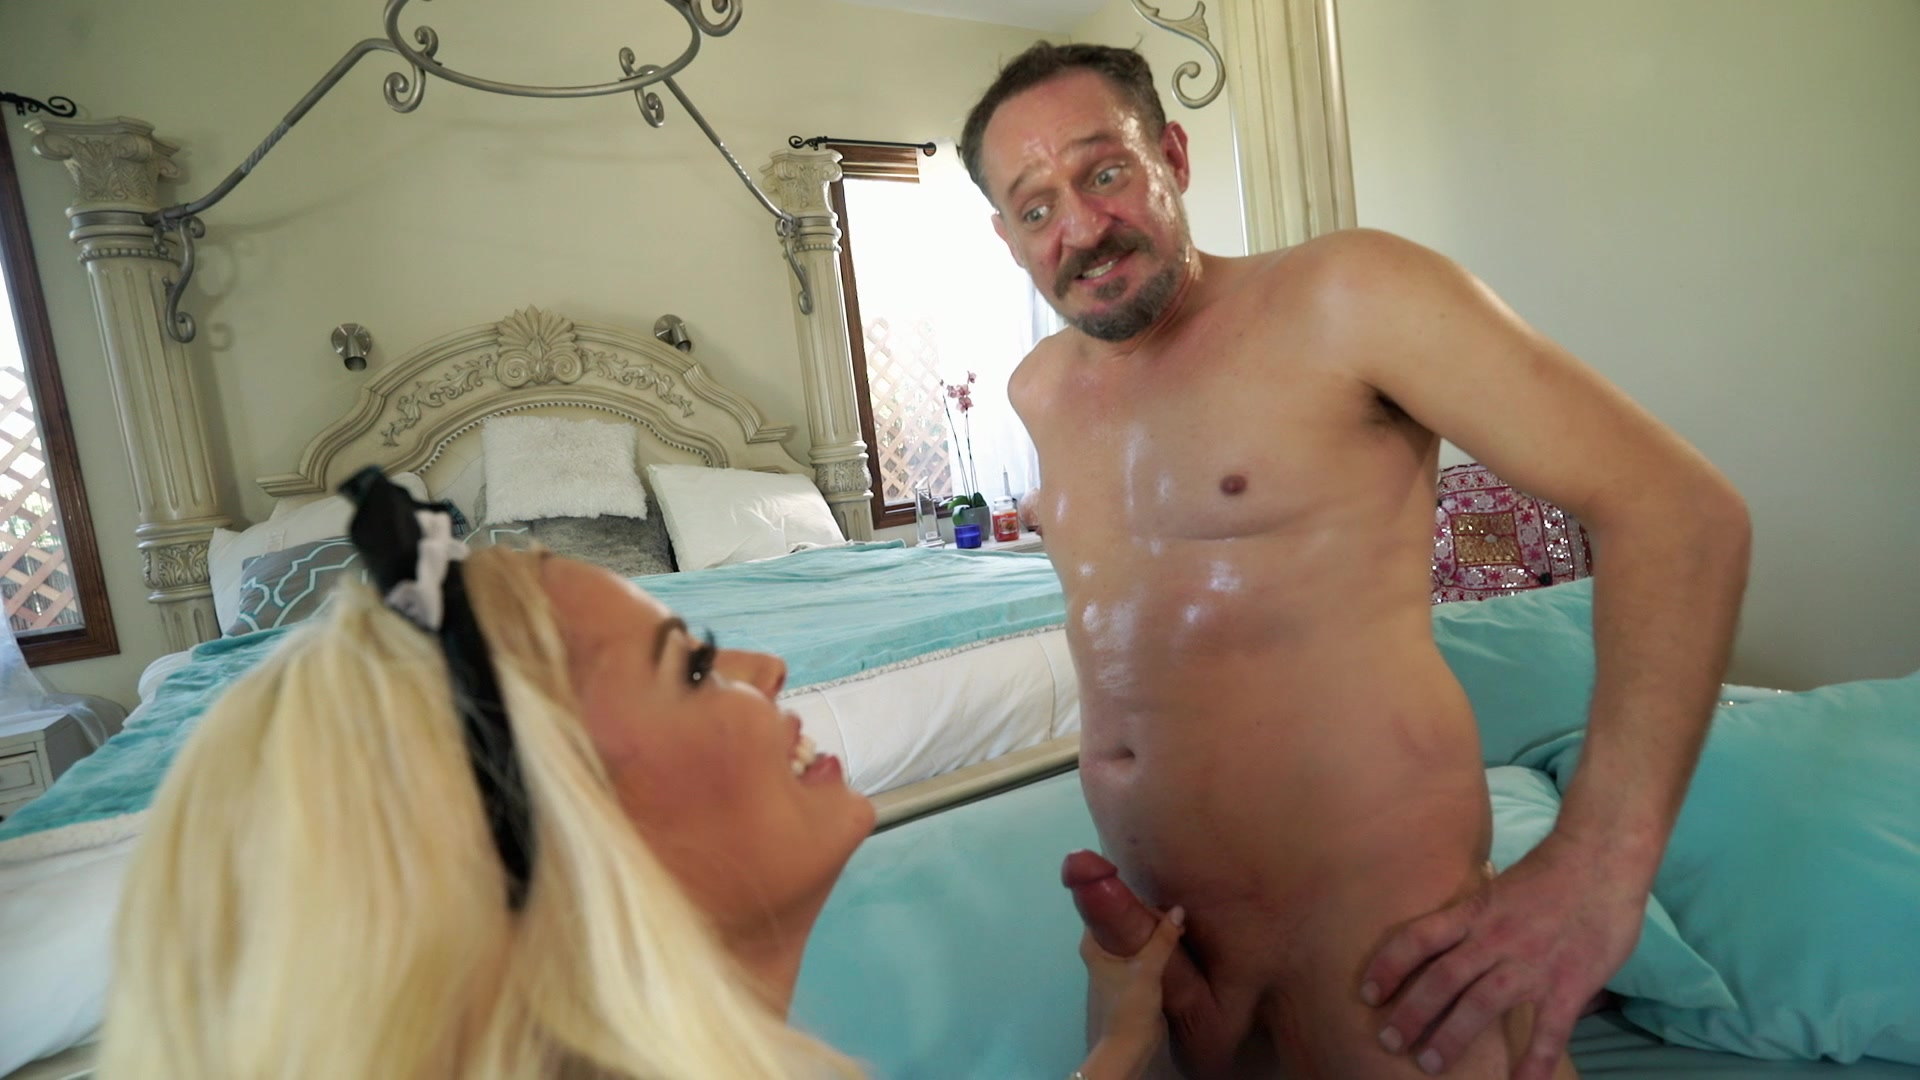 Scene with Katie Morgan and Kimberly Chi - image 2 out of 20